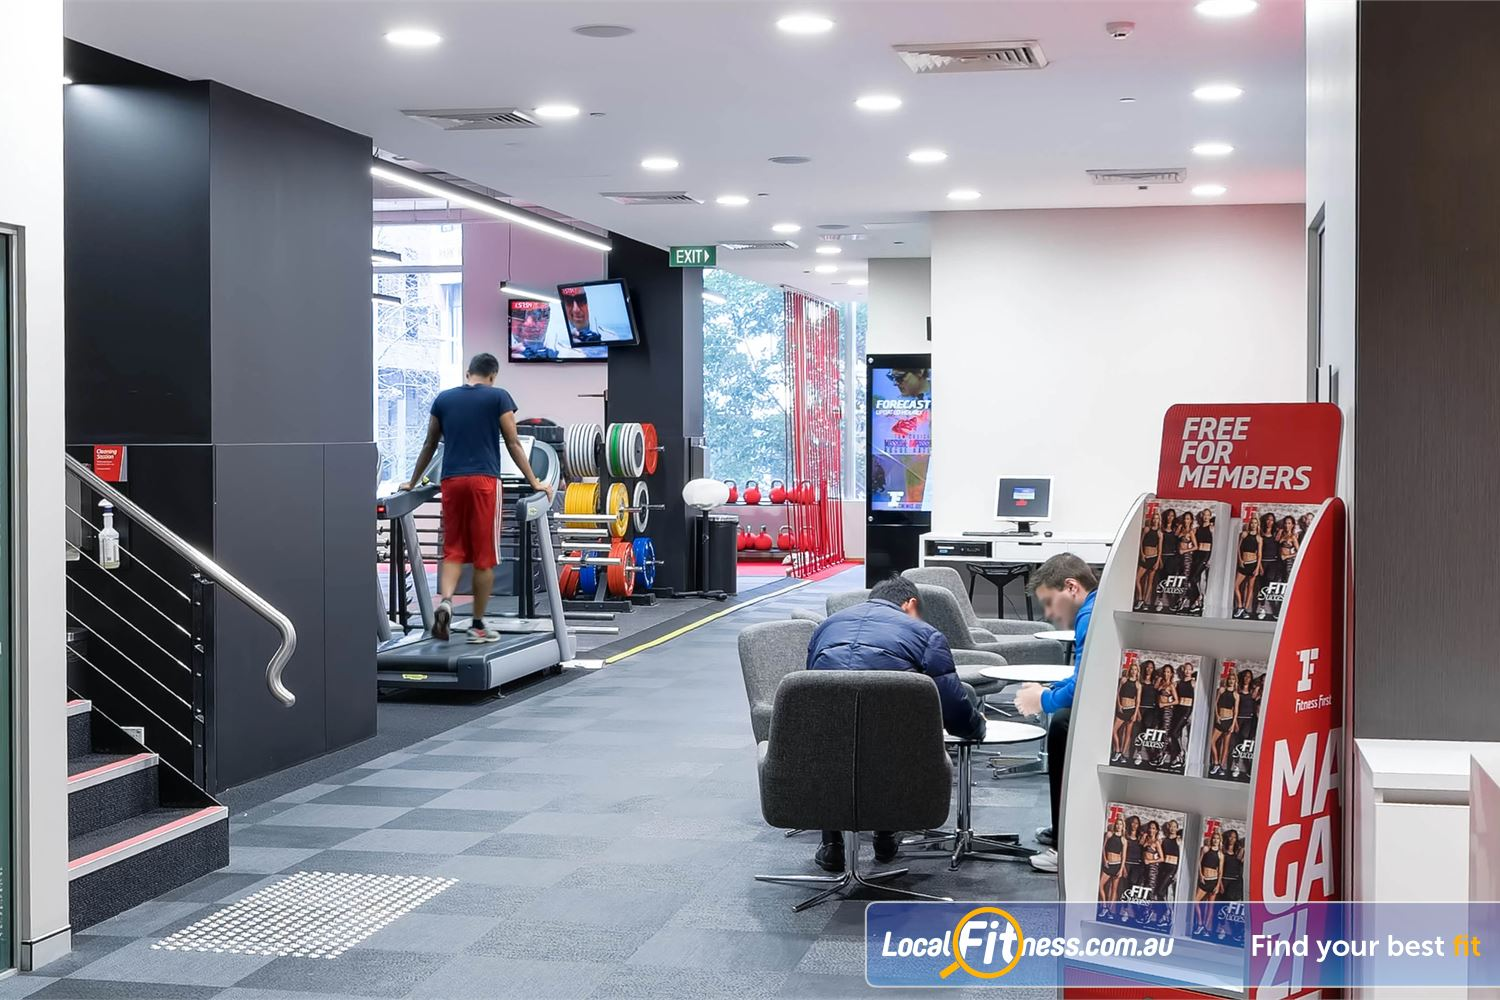 Fitness First Platinum Park St Near Alexandria Mc The relaxing Fitness First Sydney lounge.